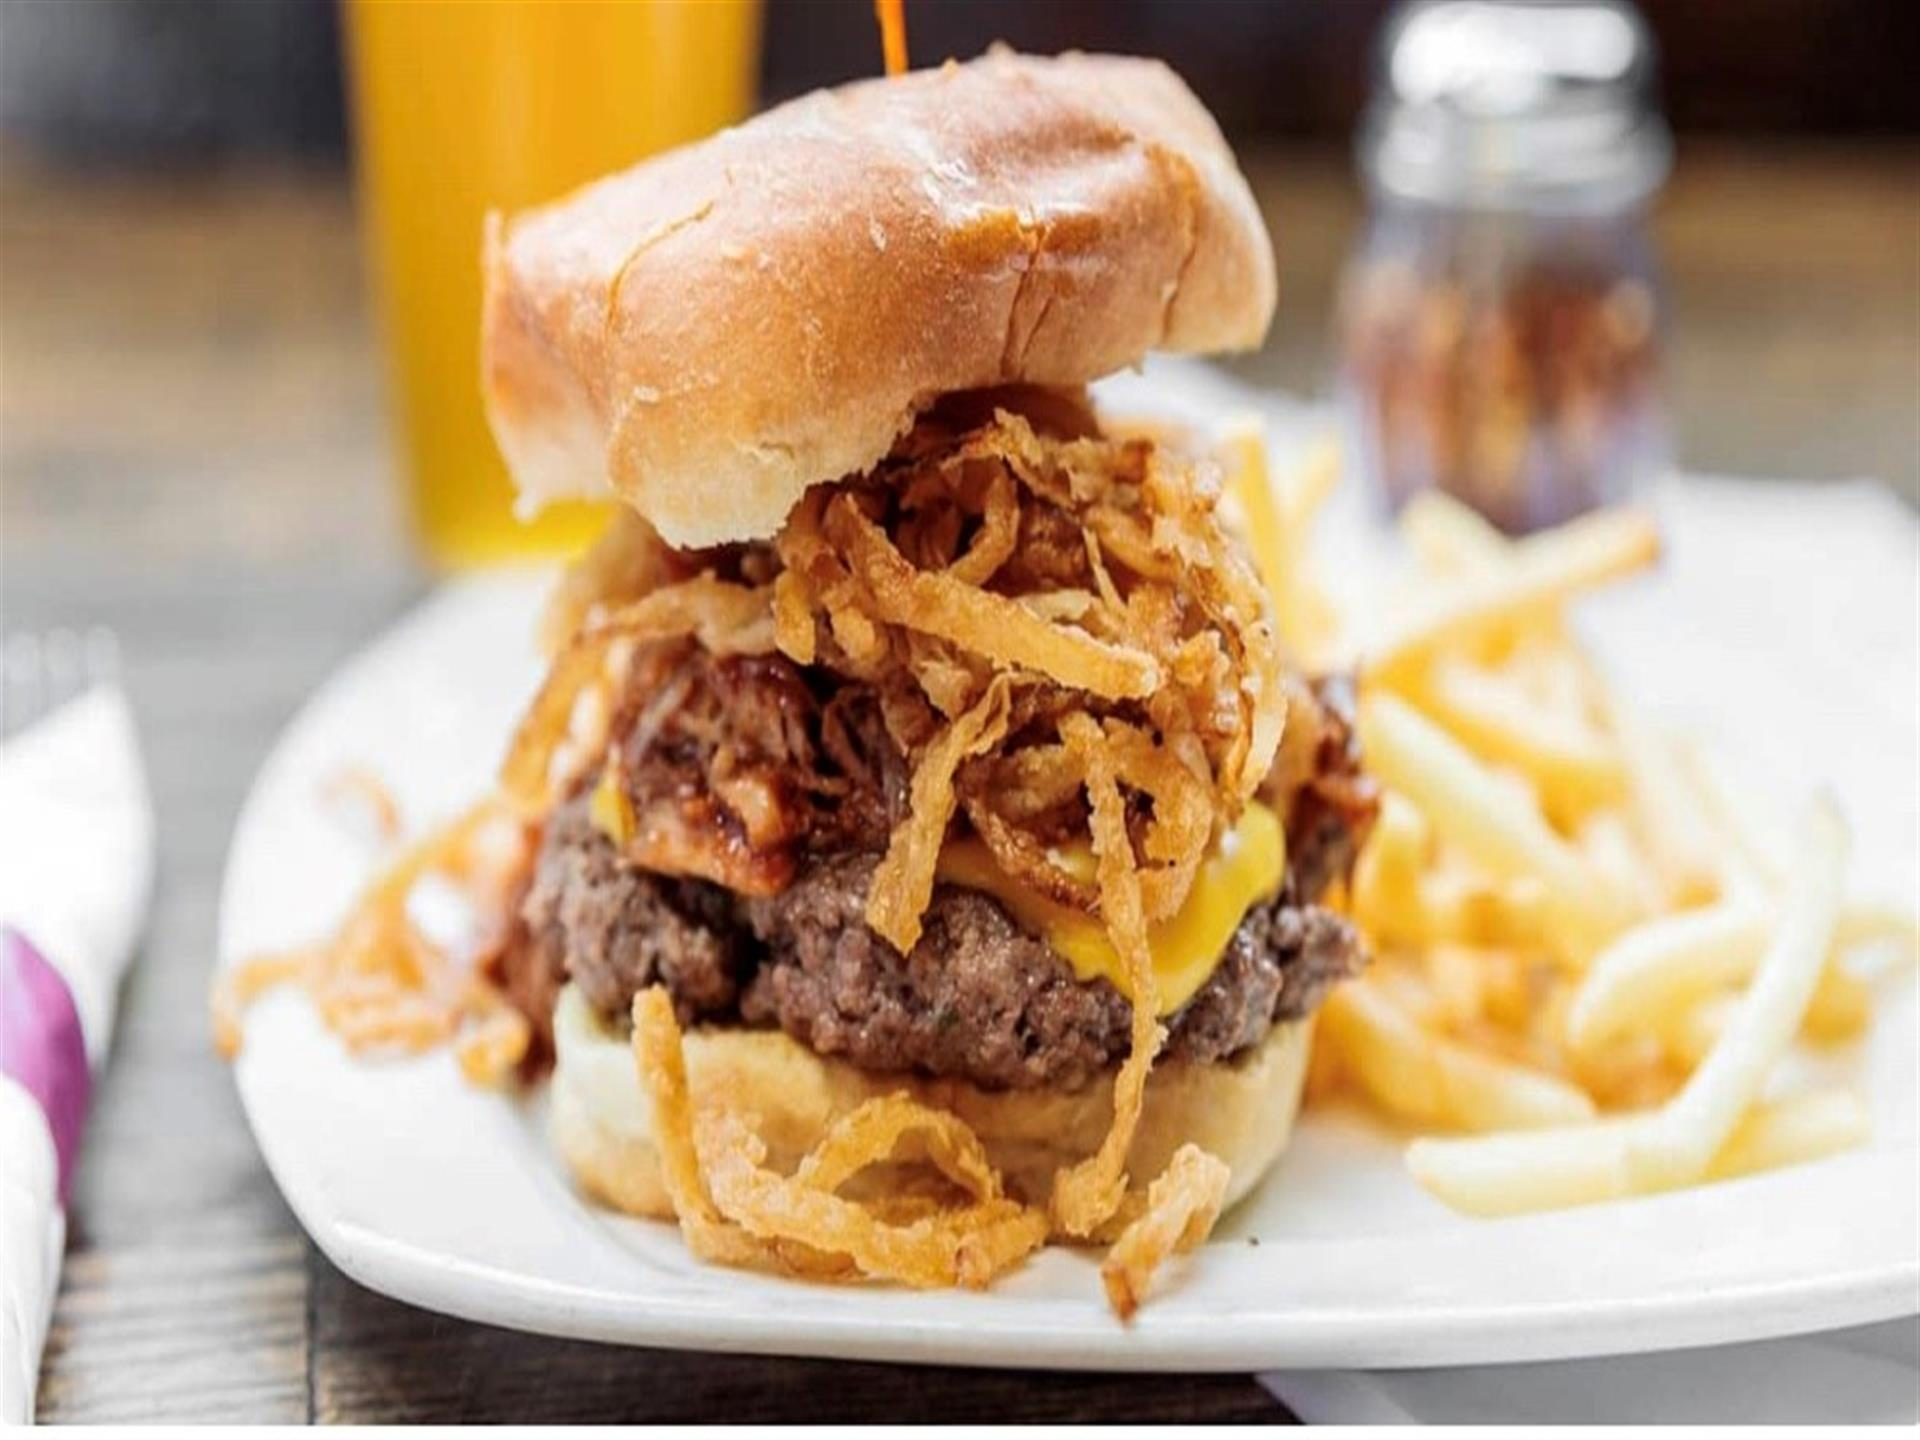 burger with onions and french fries